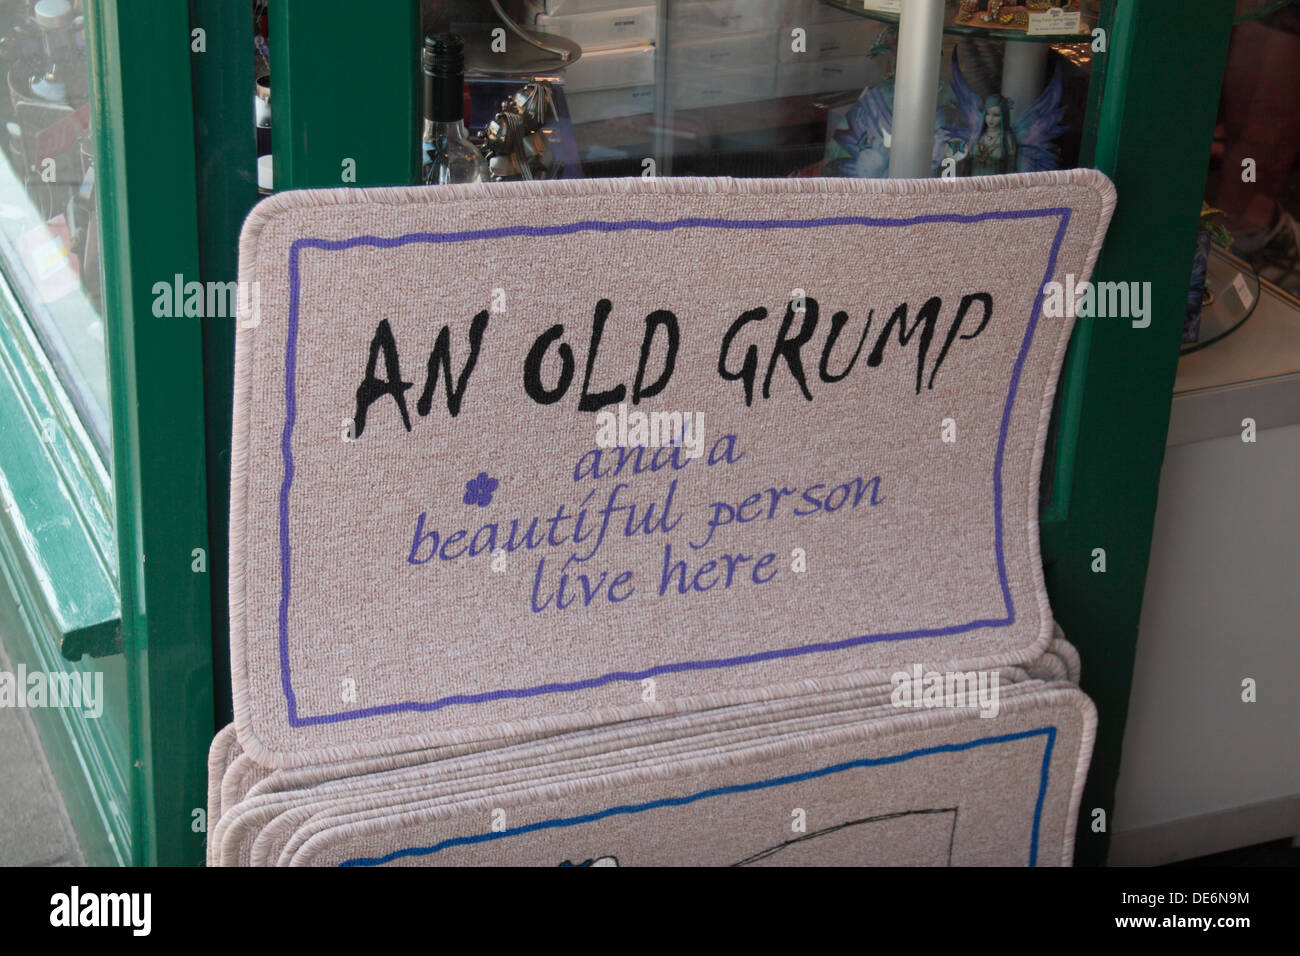 Amusing Front Door Mat For Sale Outside A Shop In Lyndhurst, New Forest, UK